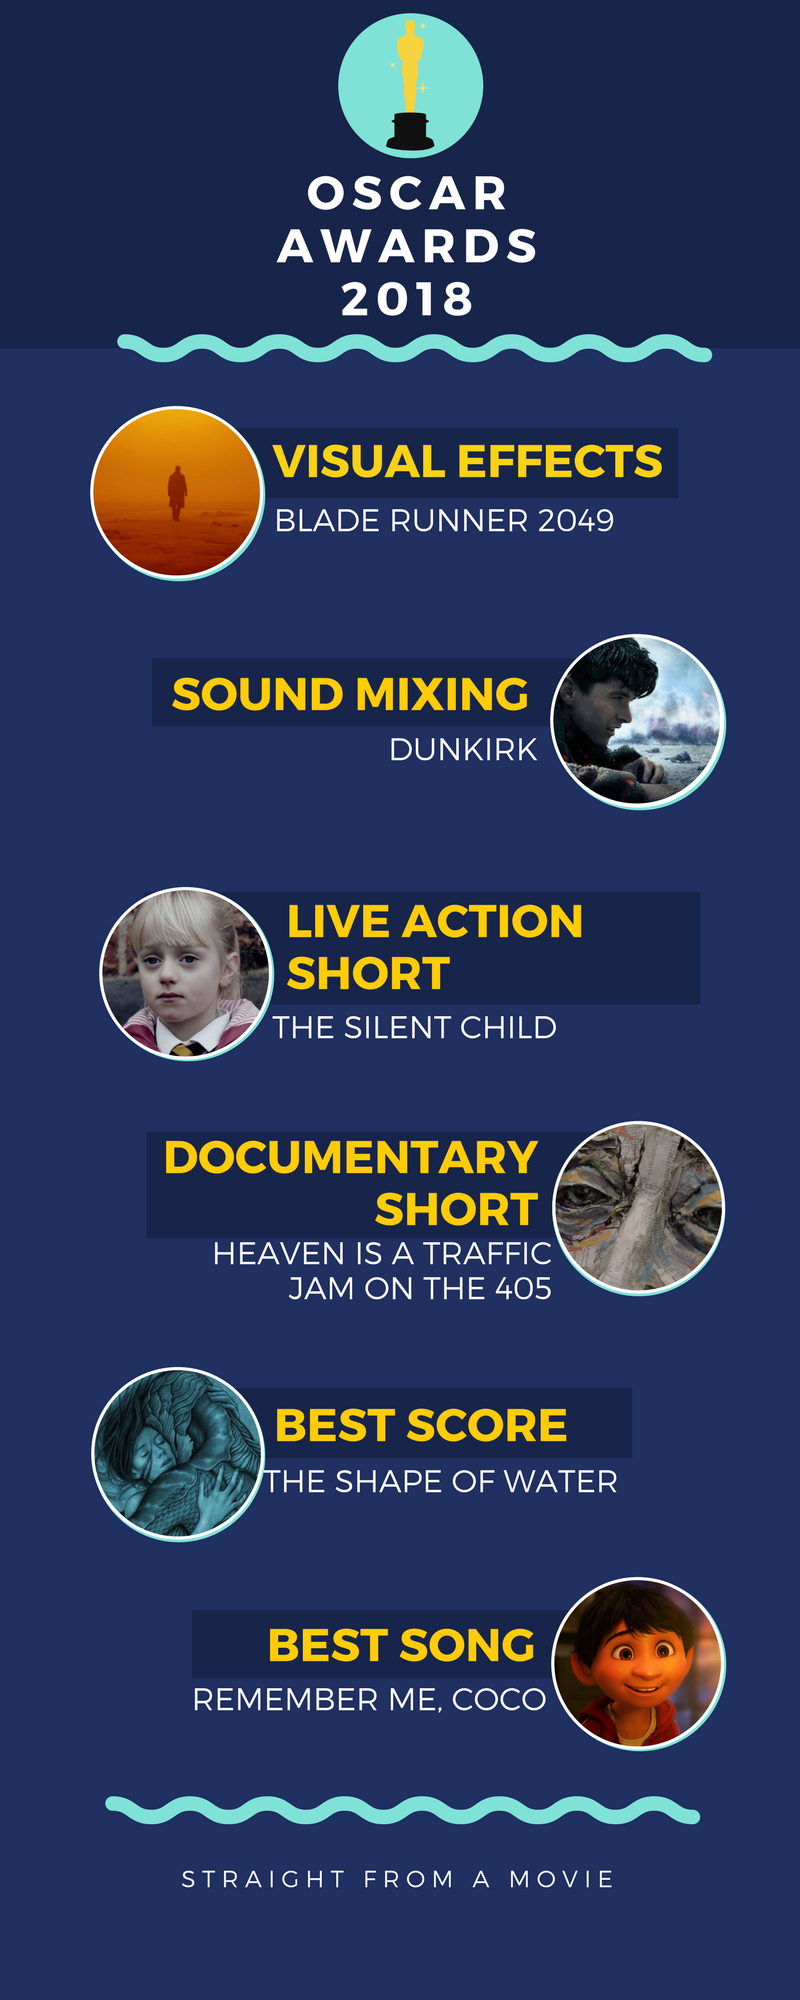 oscars 2018 infographic page 3